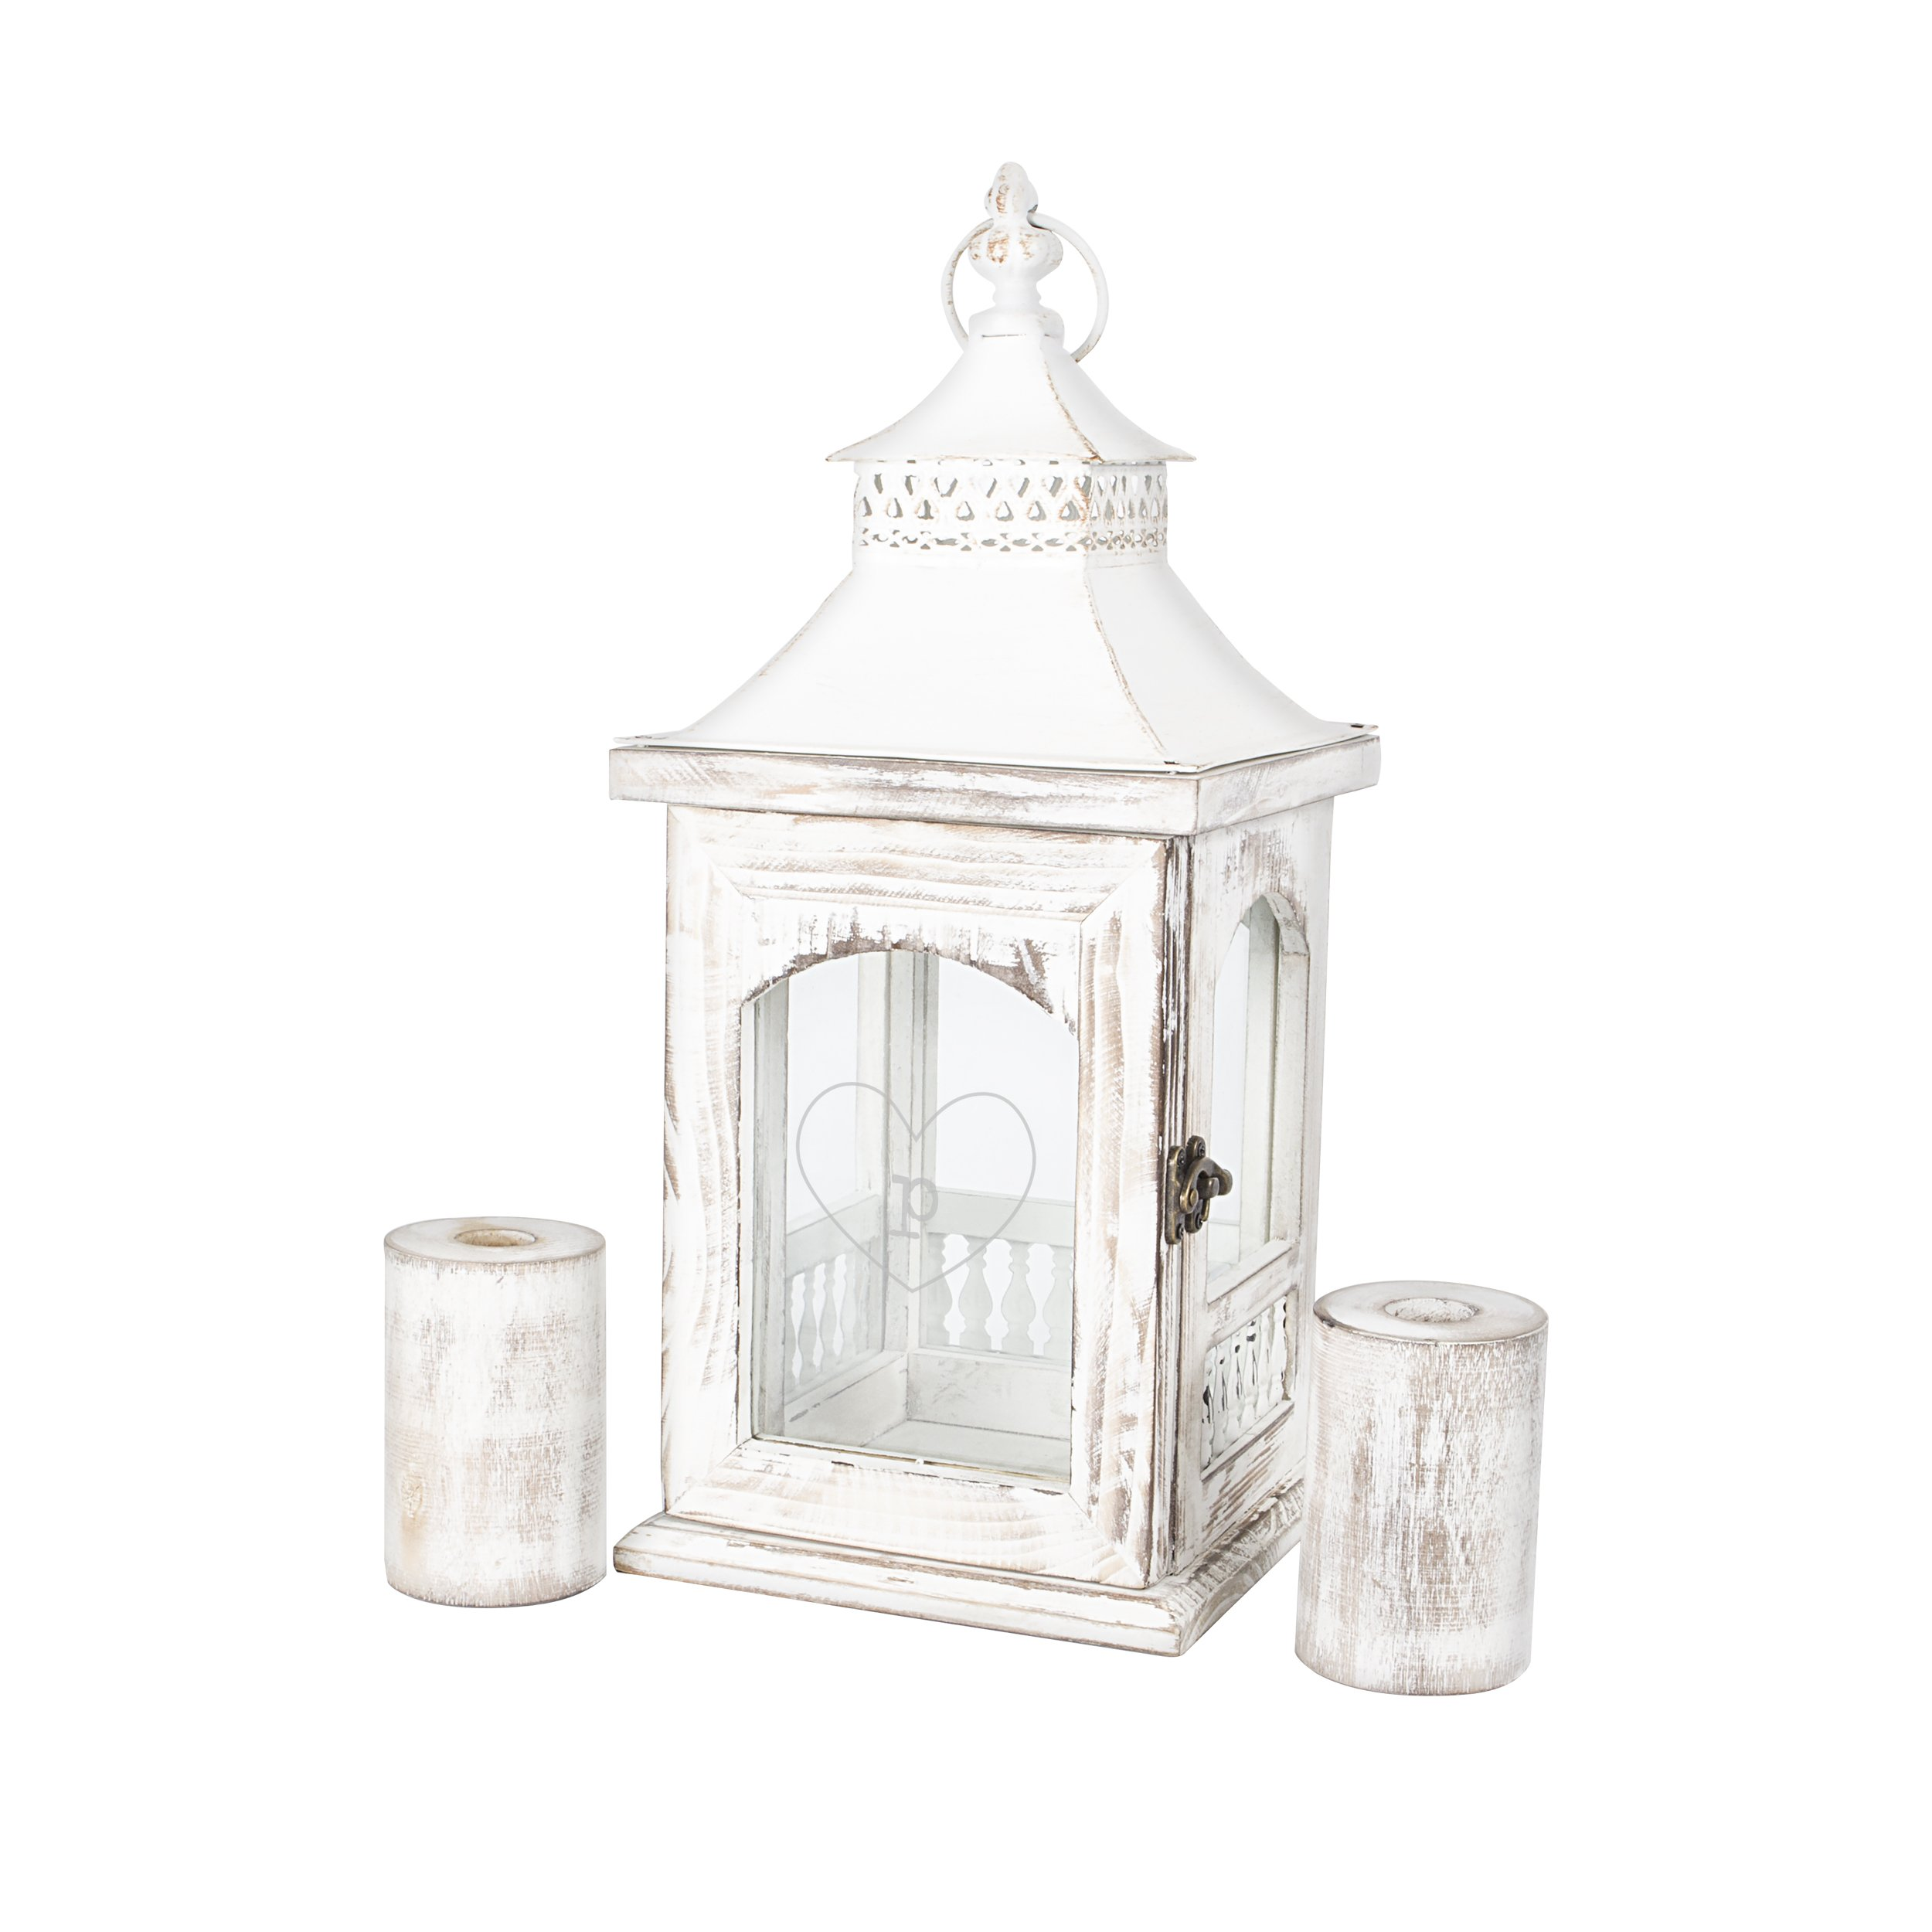 Personalized Rustic Heart Unity Lantern with Candle Holders, Letter P